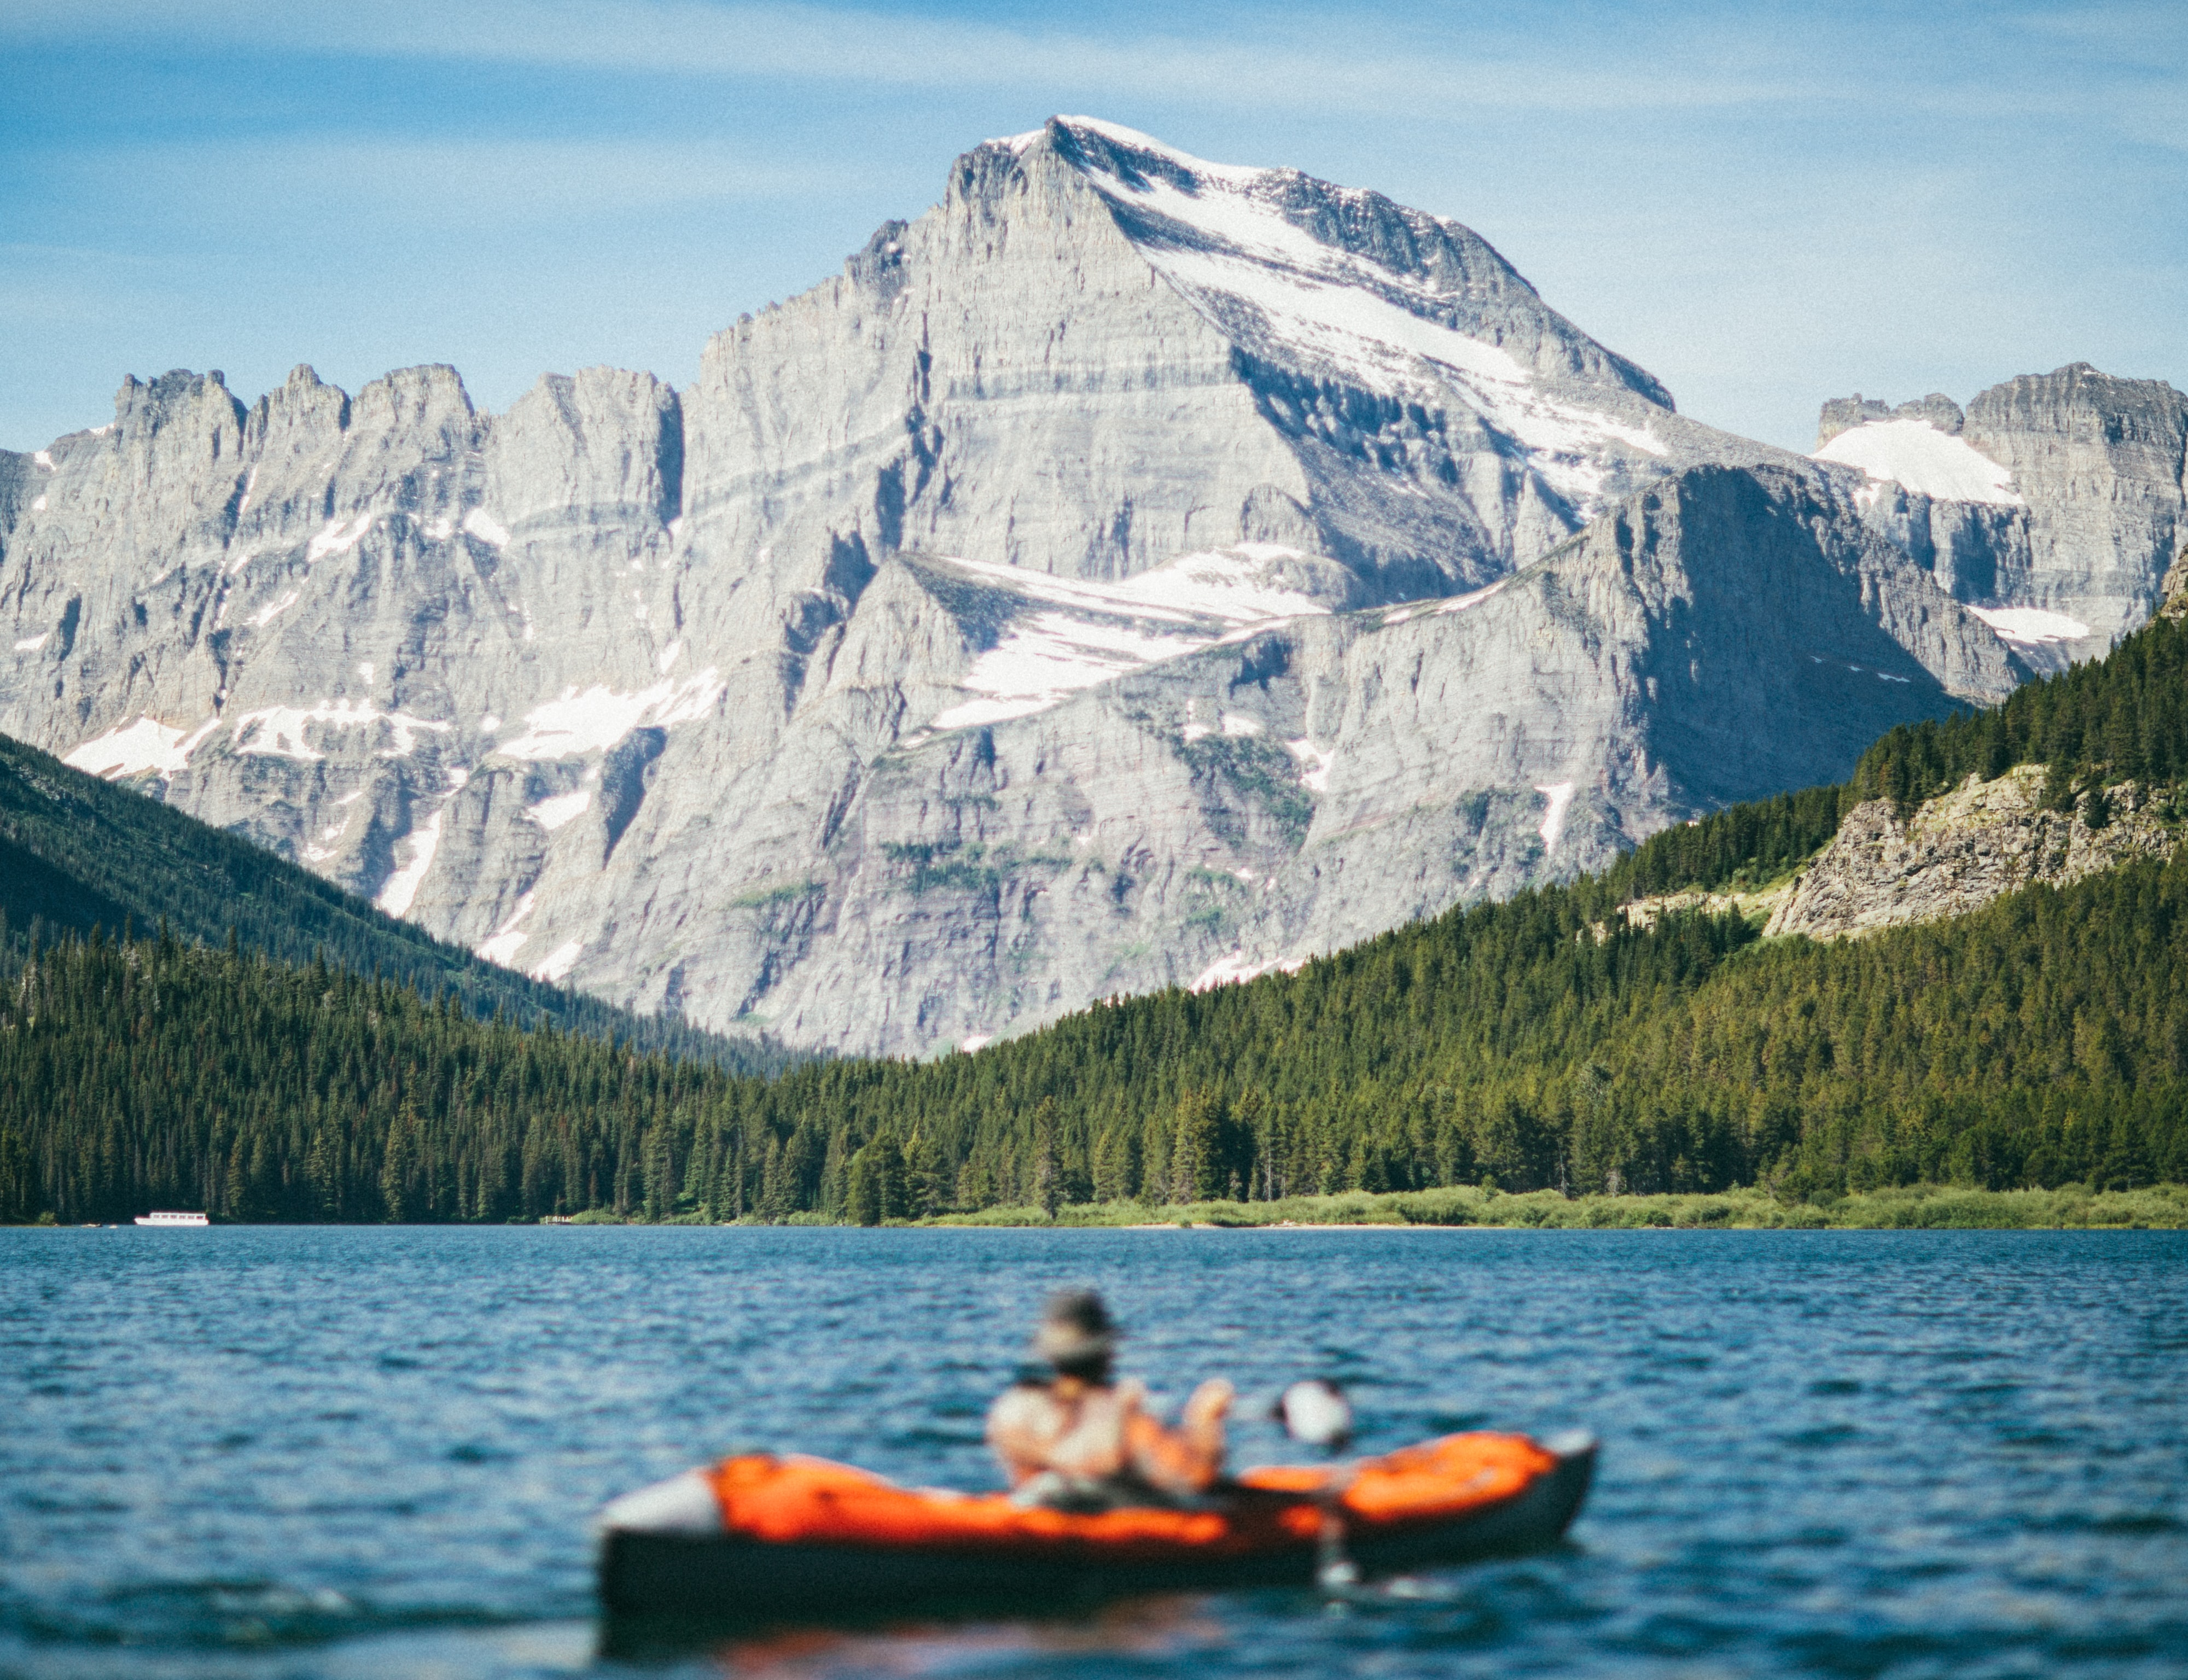 A person kayaking by the mountains in Swiftcurrent Lake